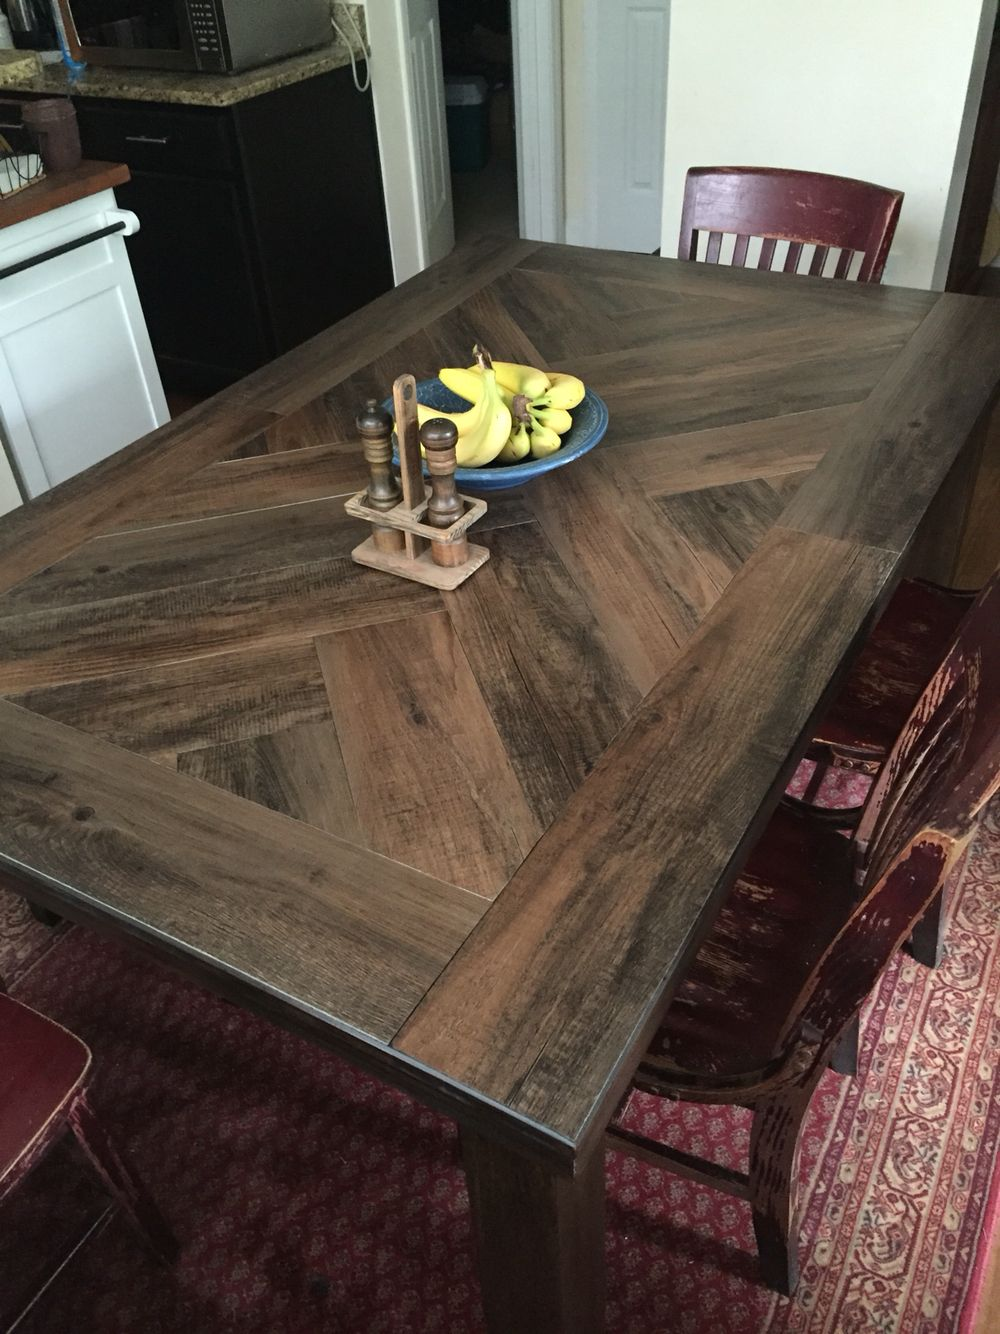 Vinyl Peel And Stick Planks On Table Top For Durability Style